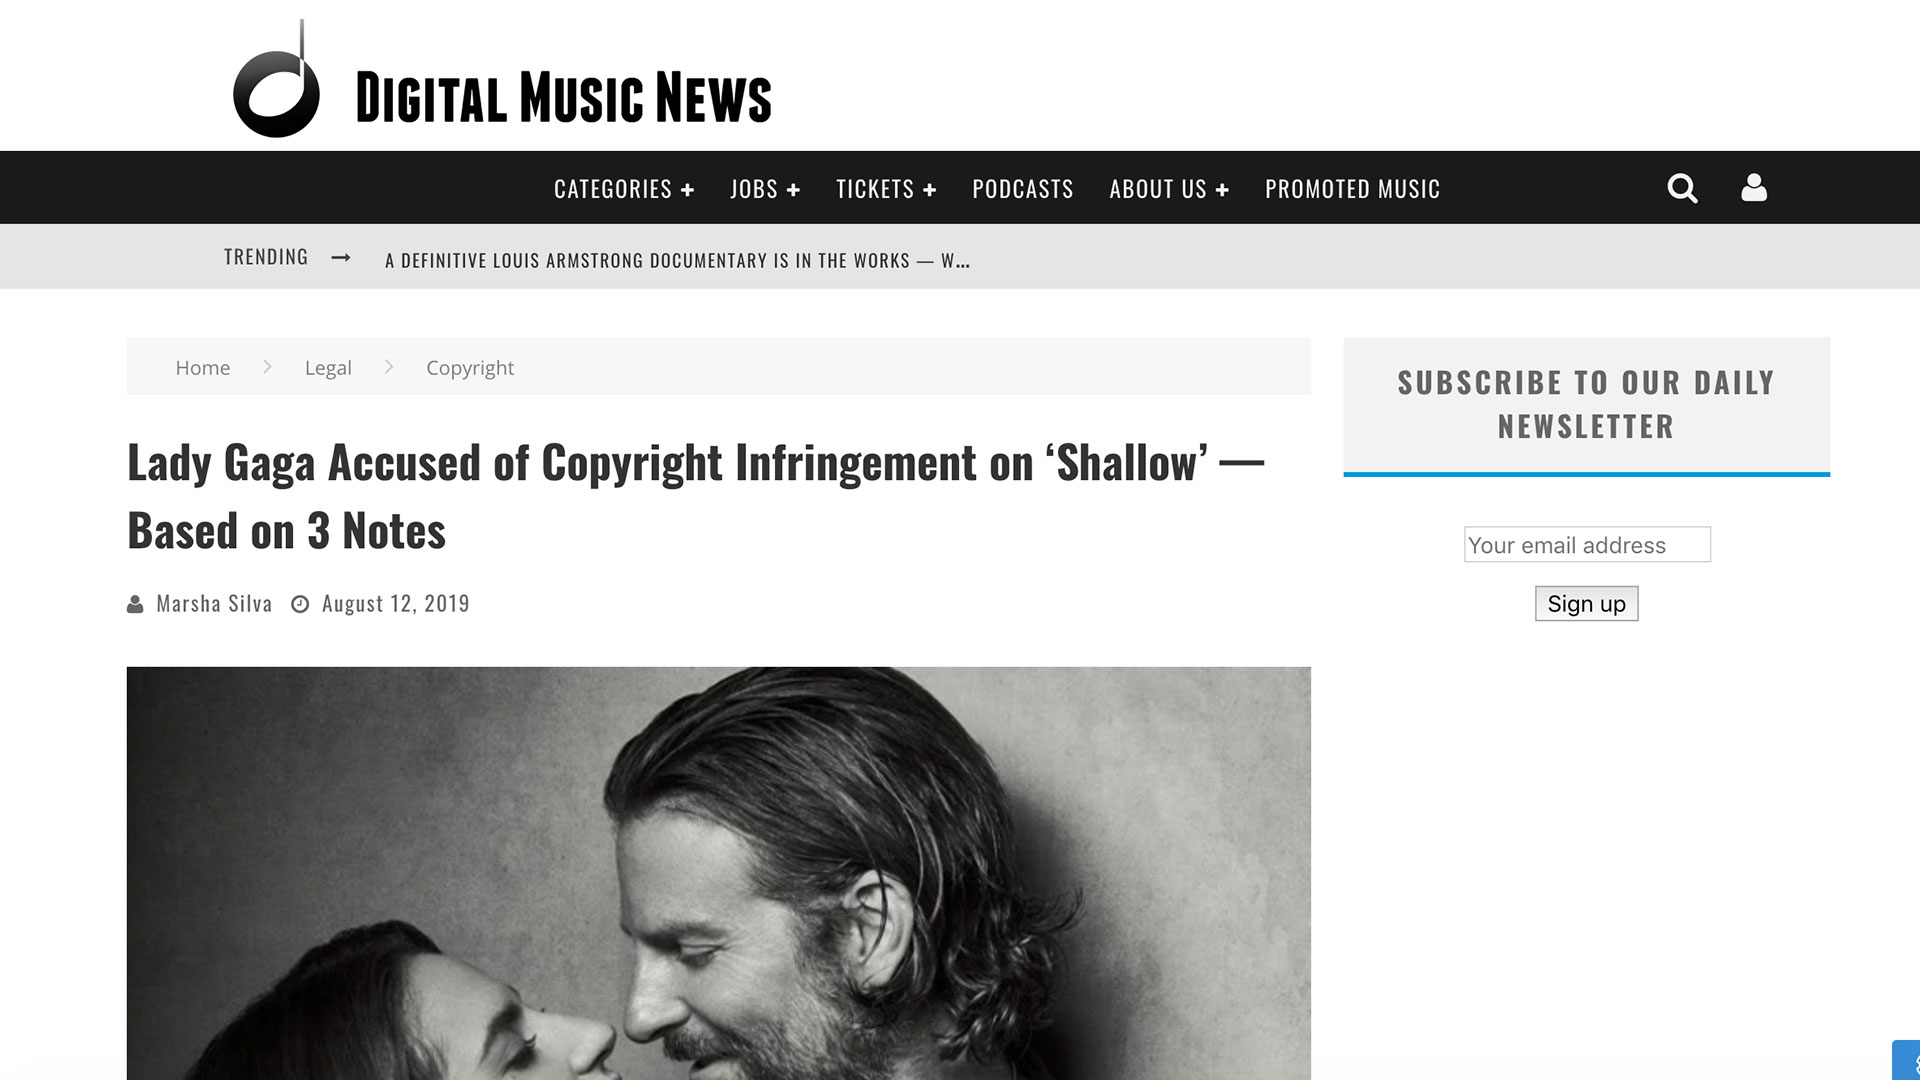 Fairness Rocks News Lady Gaga Accused of Copyright Infringement on 'Shallow' — Based on 3 Notes